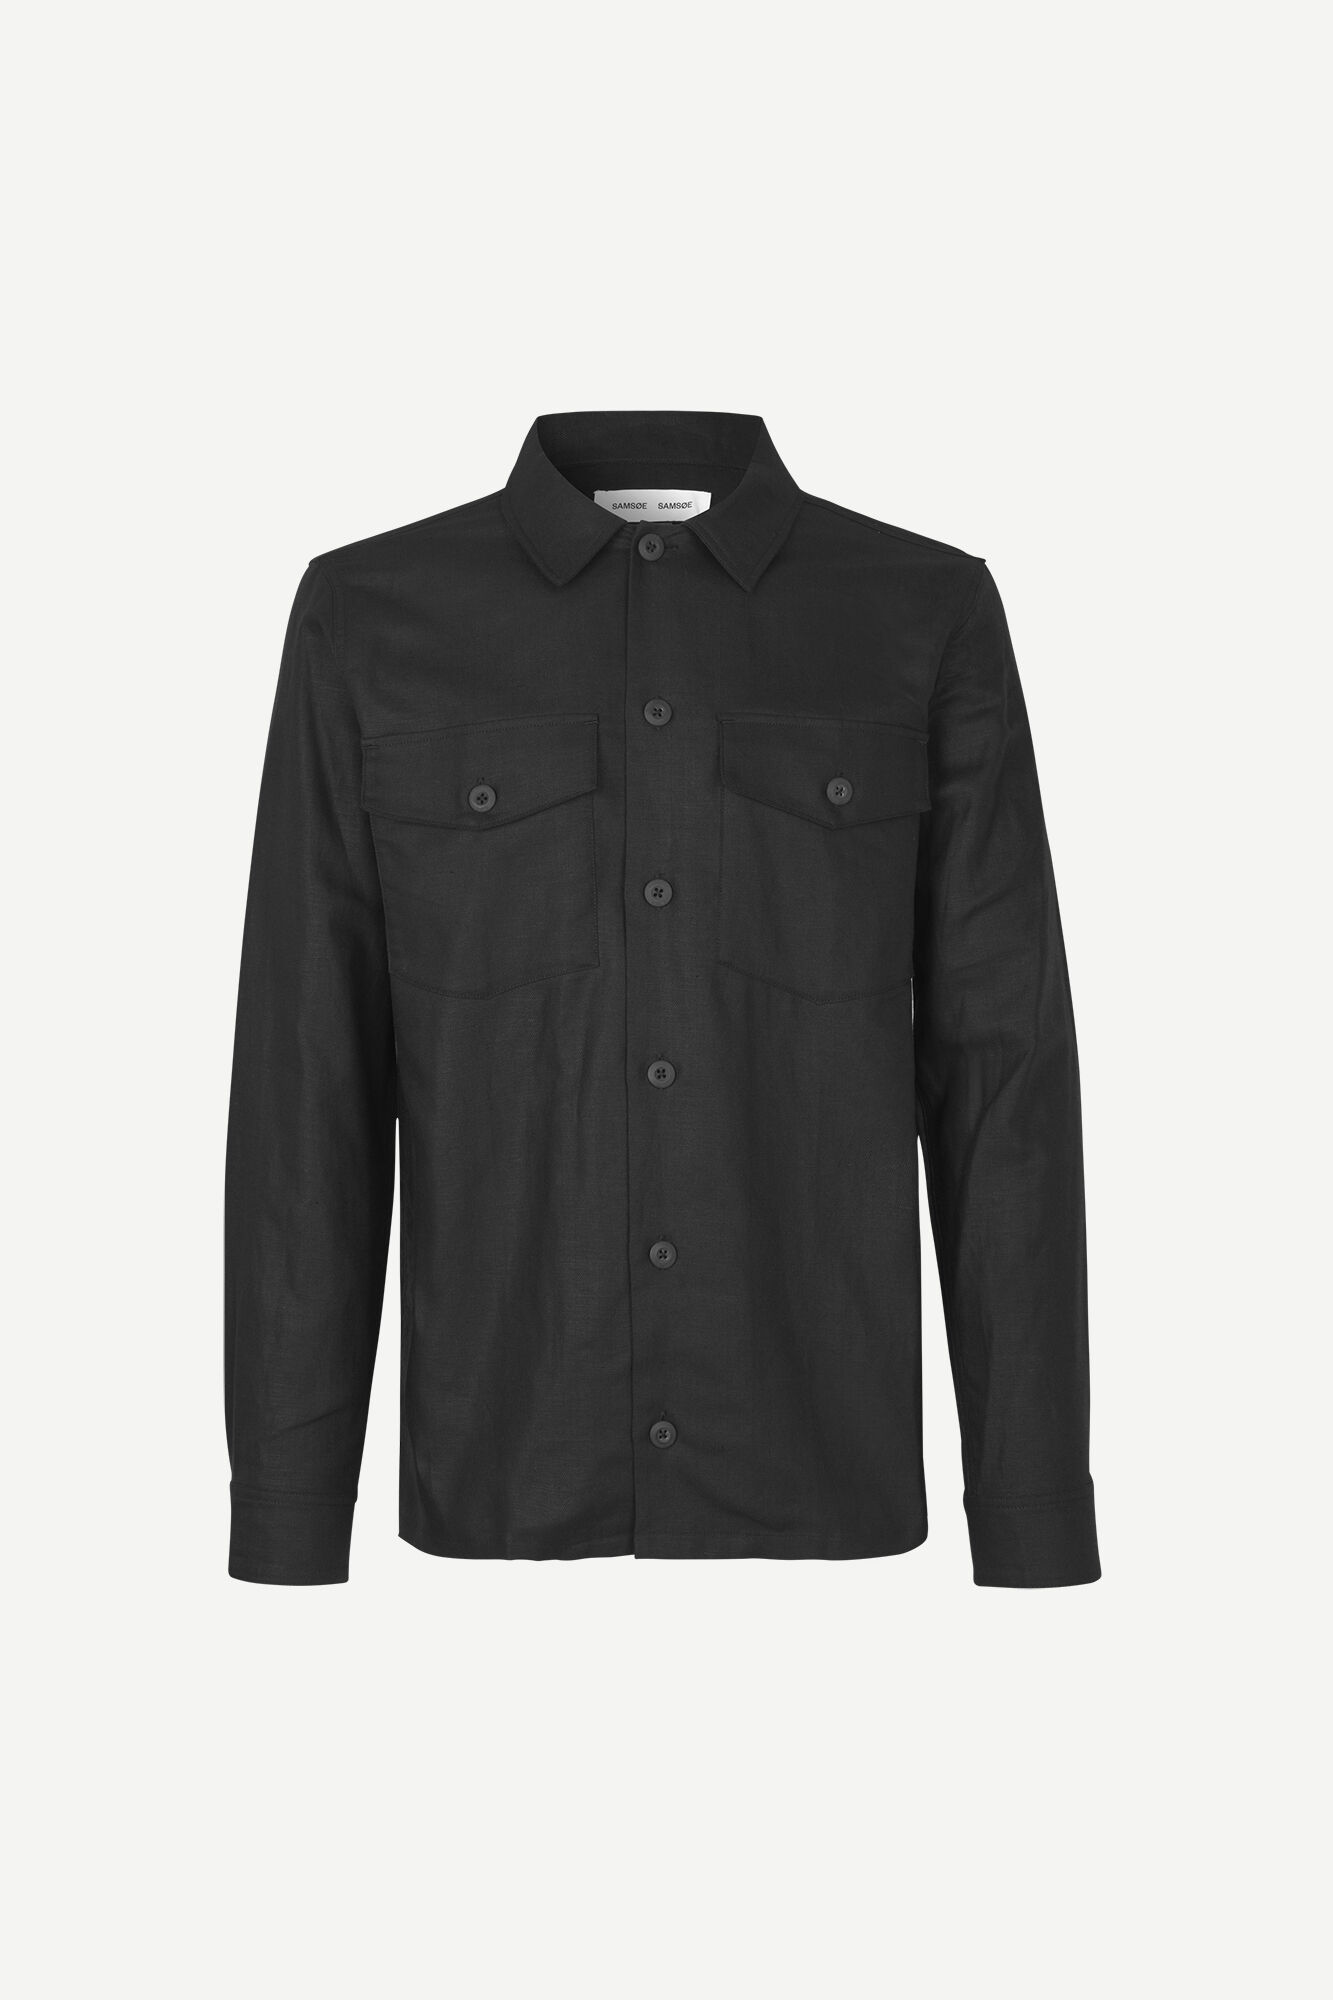 Luccas N shirt 11535, BLACK